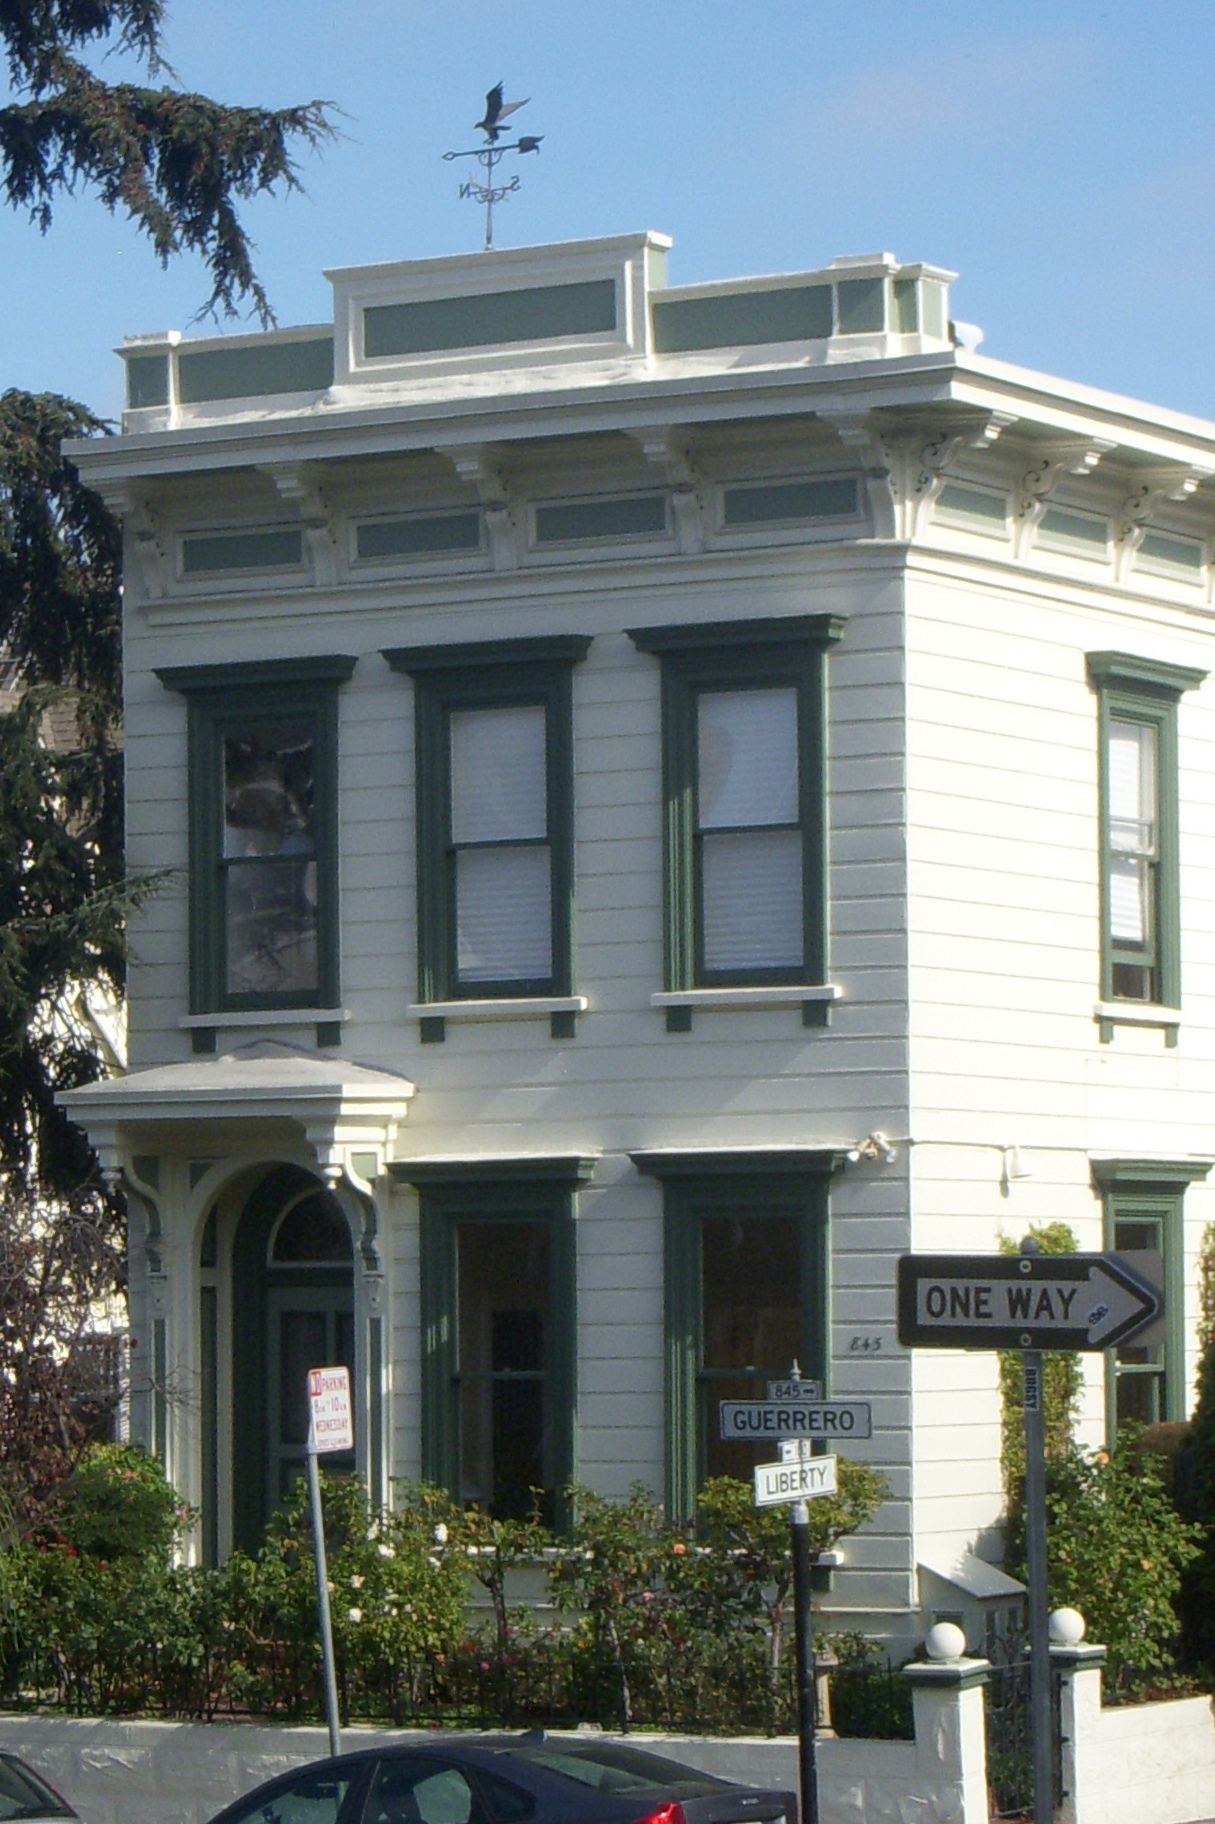 1870 flat-front home on Guerrero.